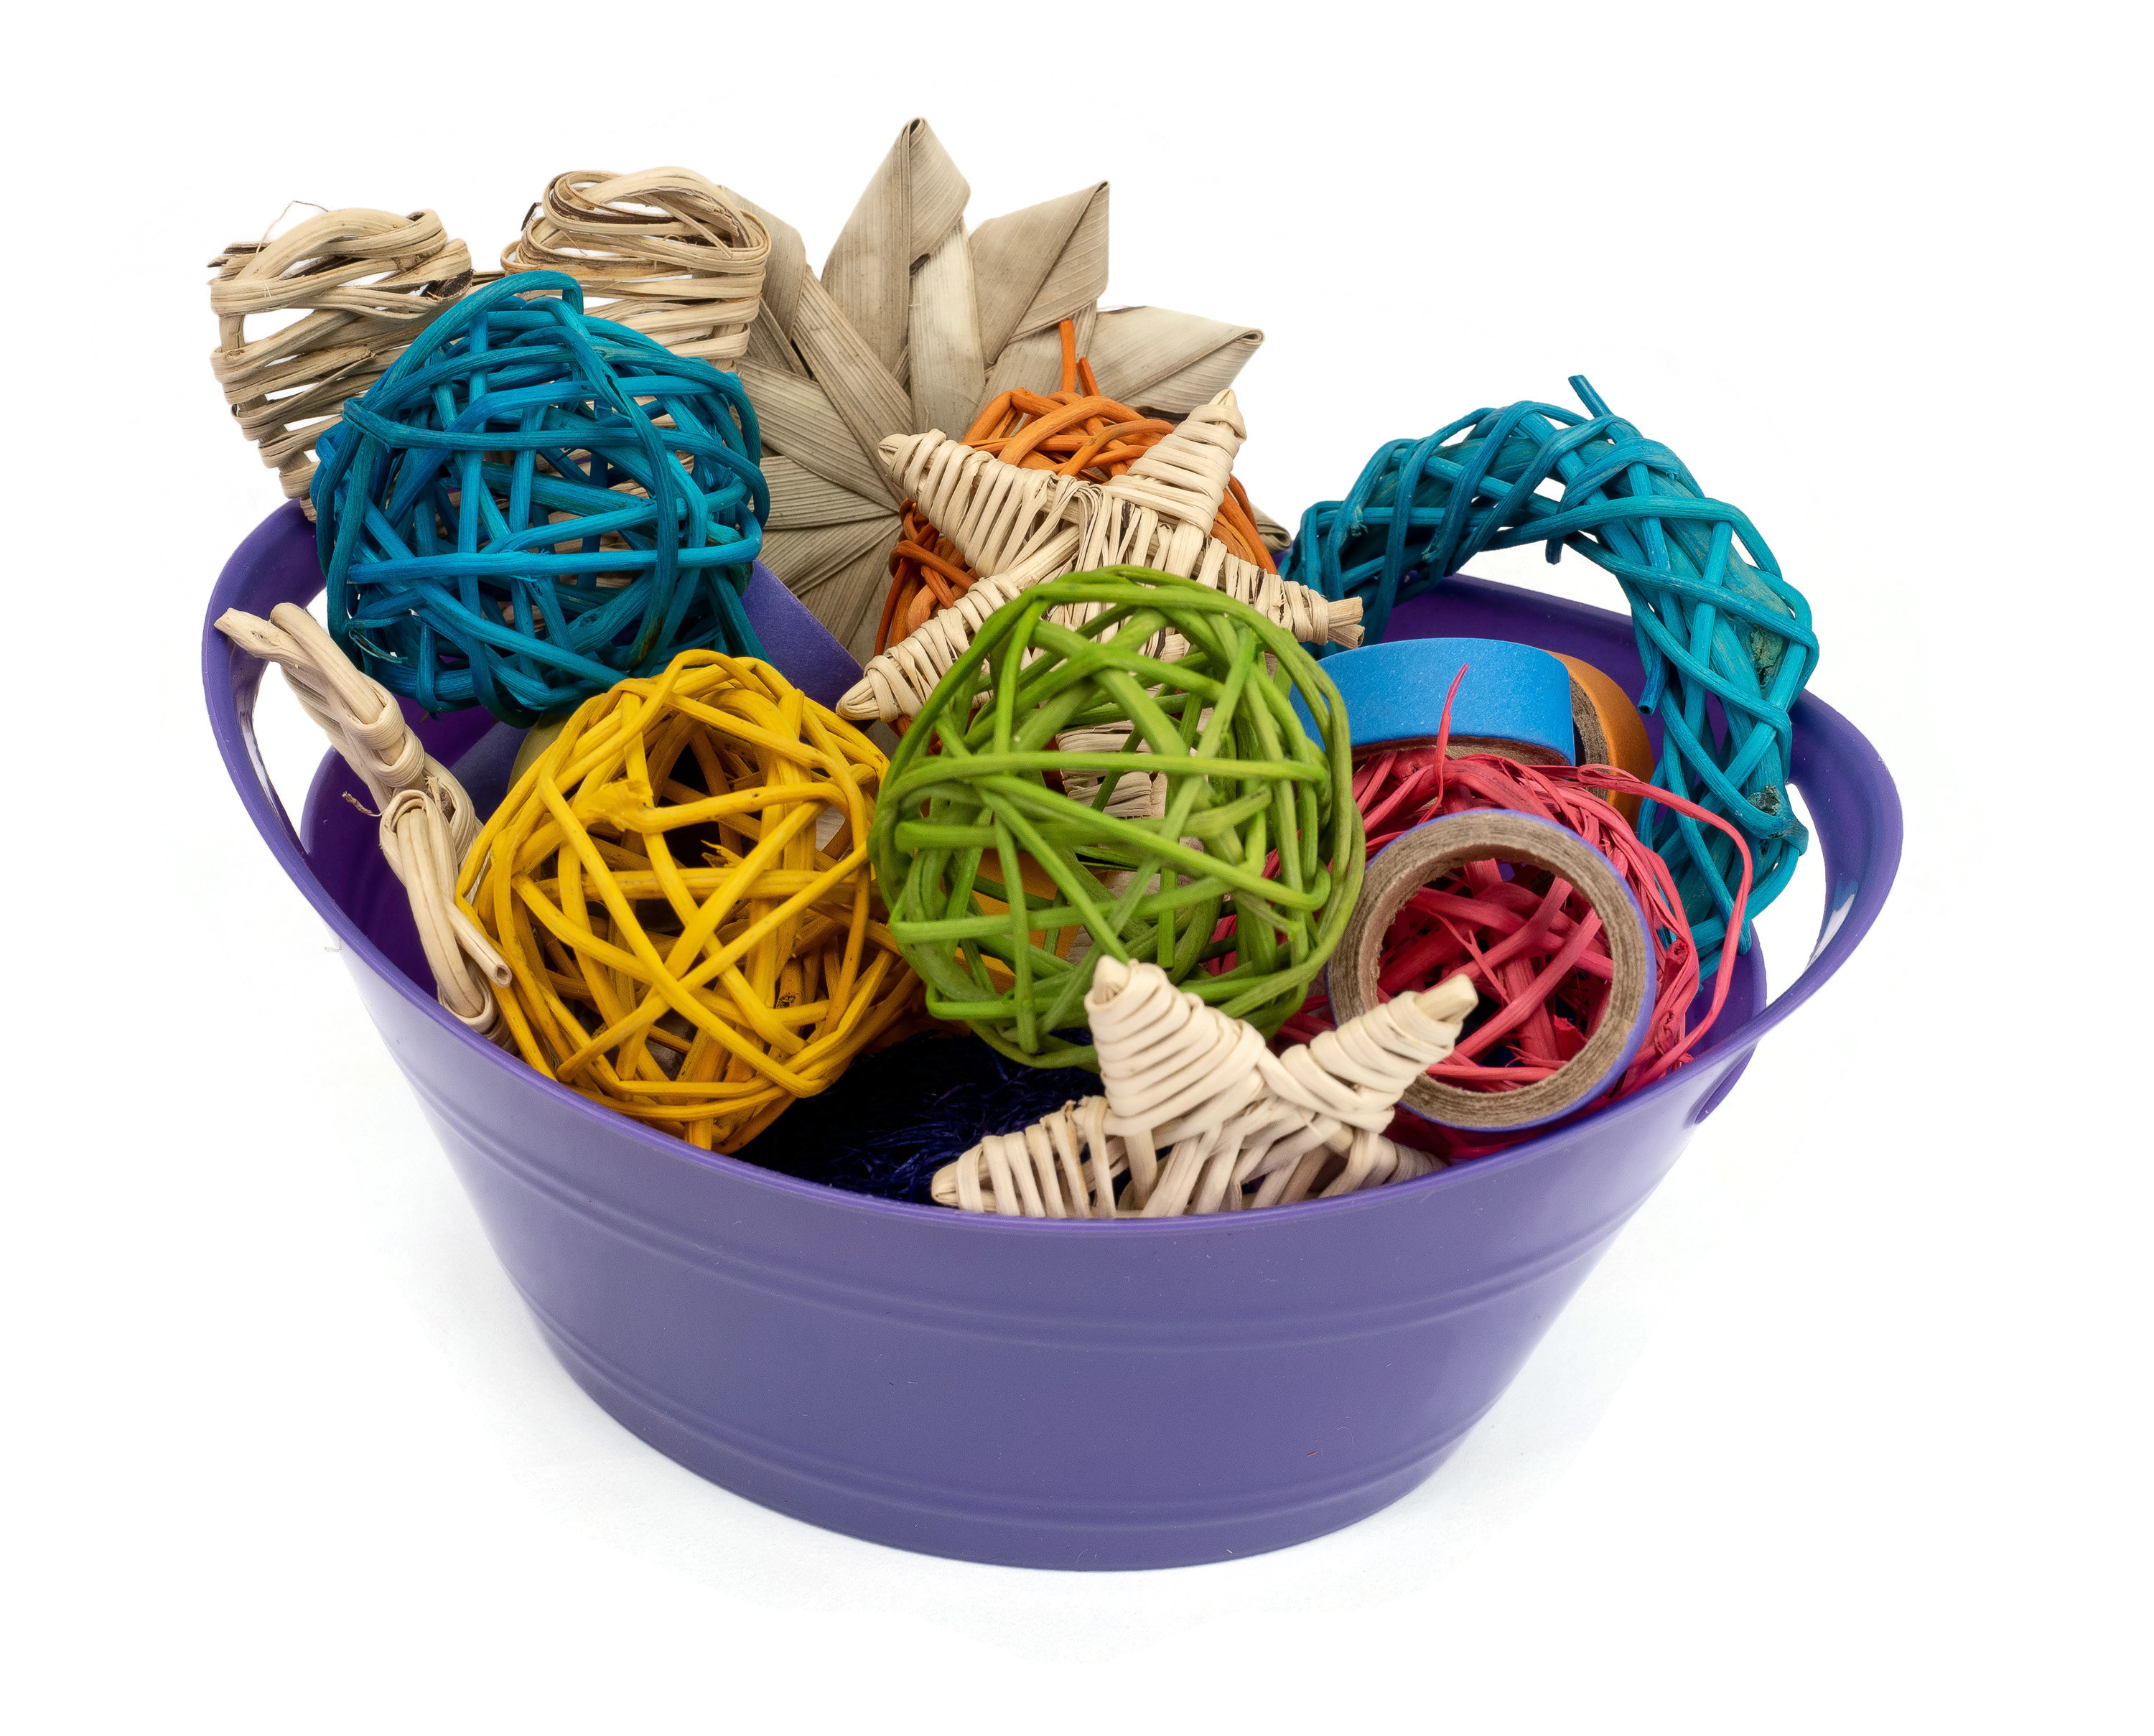 Tiny Treasures Basket (Small) - Loved by Hamsters, Mice, Gerbils, Rats and Guinea Pigs